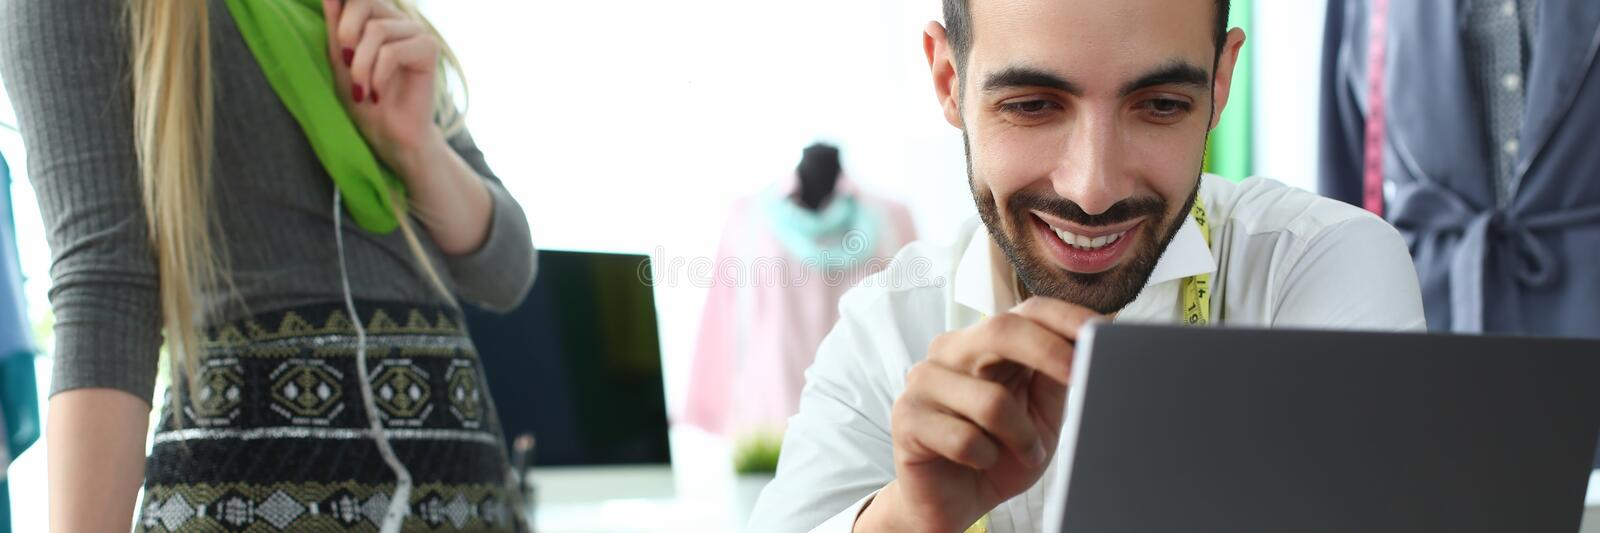 Computer Technology Modern Fashion Sewing Idea. Smiling Man Looking at Laptop Screen. Caucasian Woman Designer Creating Exclusive Garment for Order. People stock photos